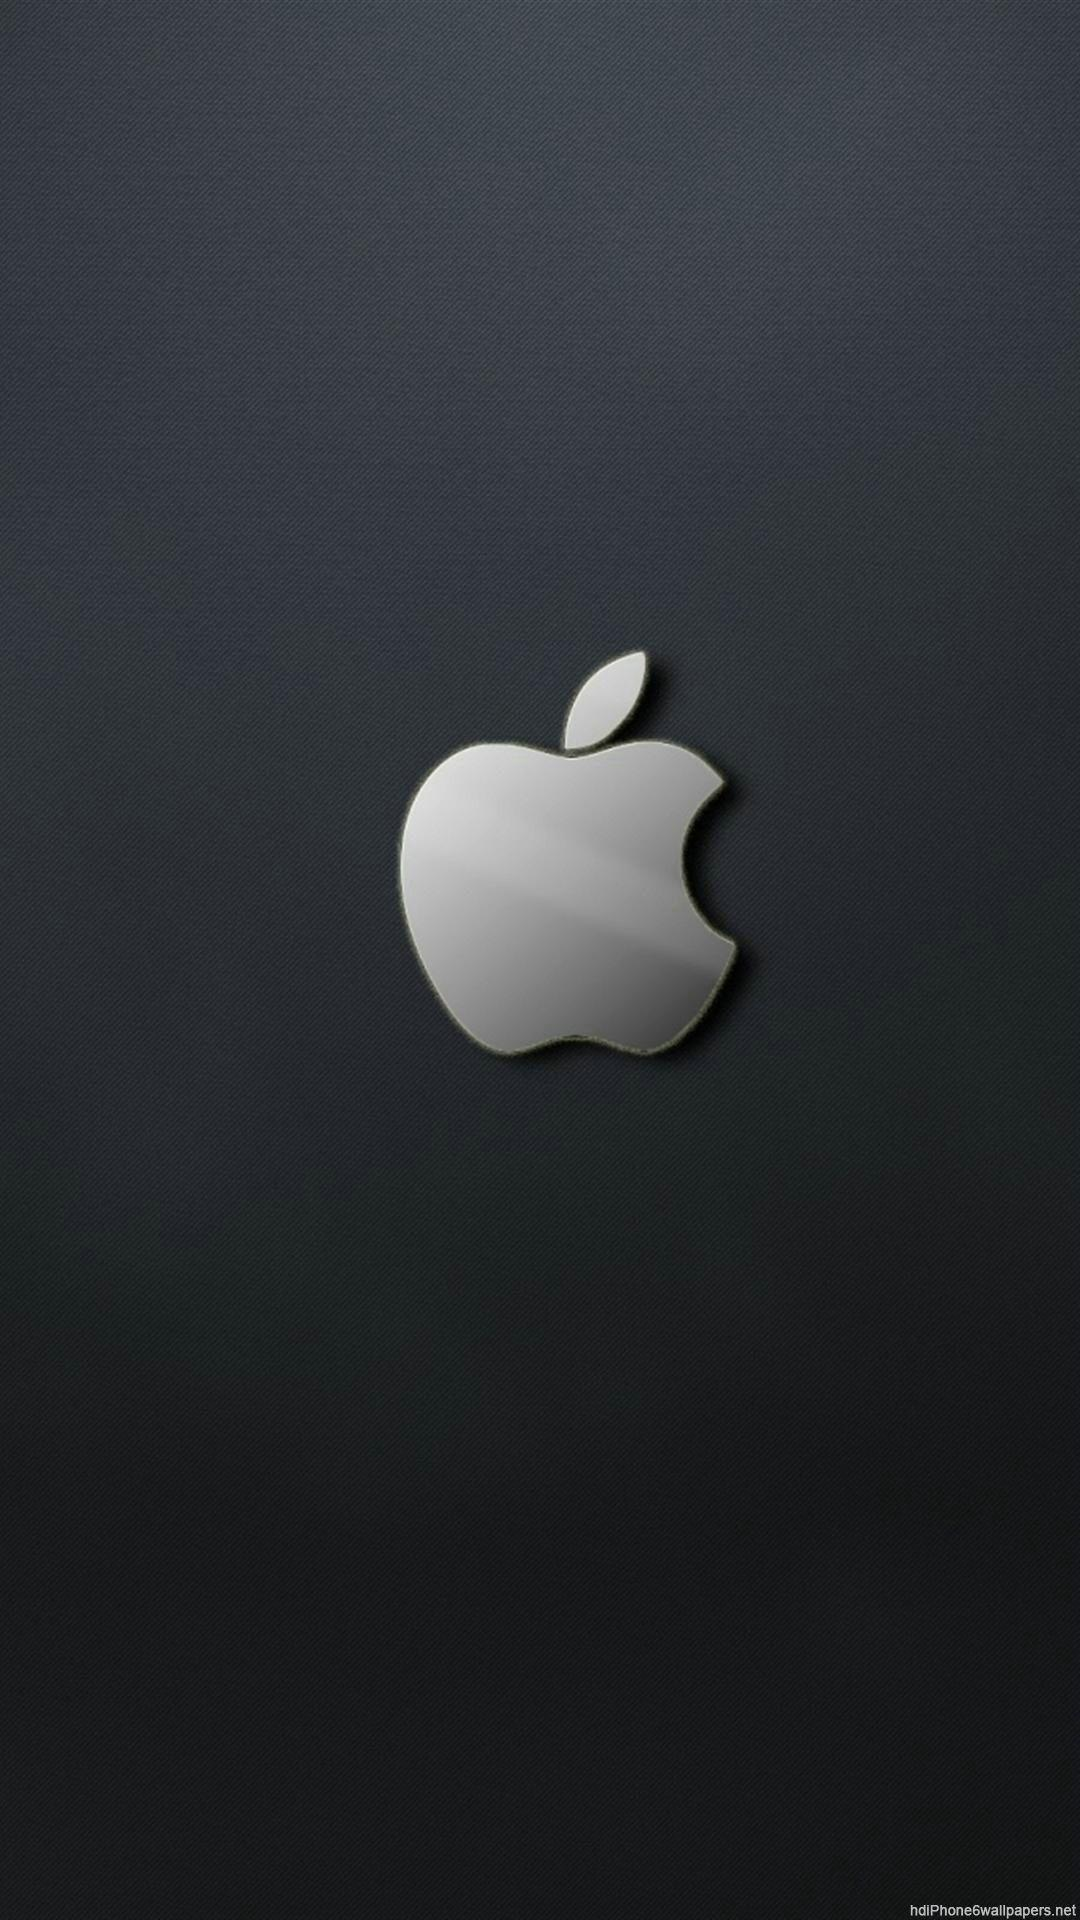 Apple Logo Wallpapers Hd 1080p For Iphone Wallpaper Cave